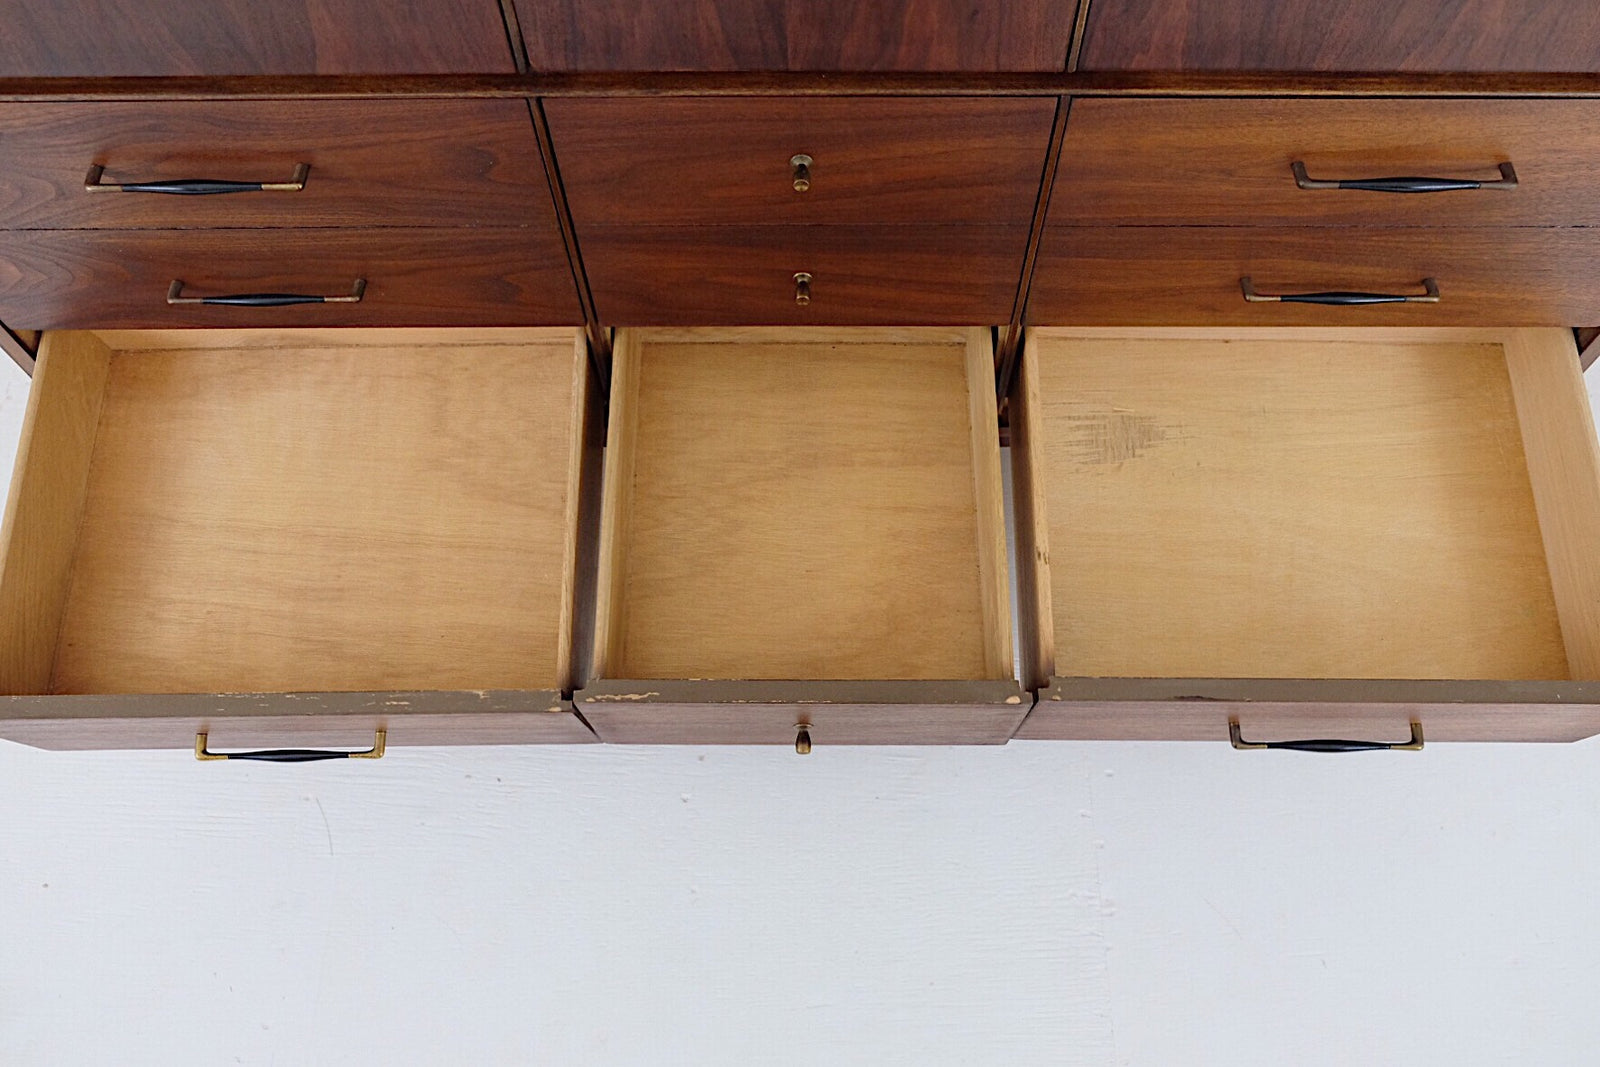 Mid Century Modern Low Dresser Nine Drawers New Cherry Veneer Top, Beautiful Black and Brass Handles